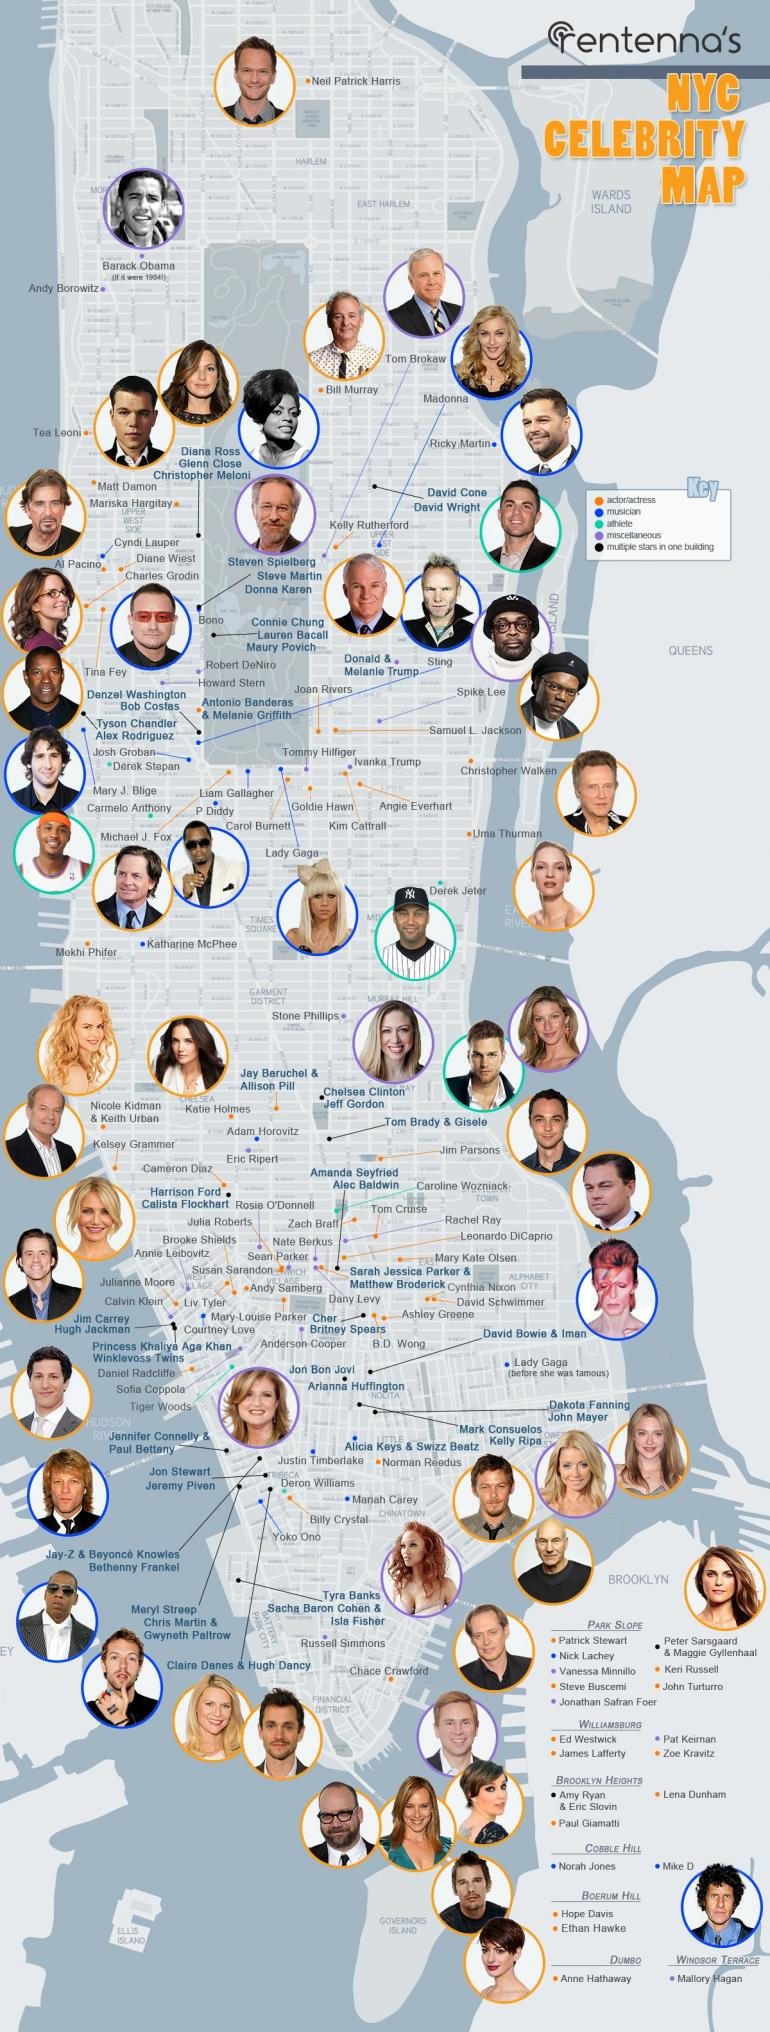 nyc-celebrity-star-map-2014-rentenna.jpg